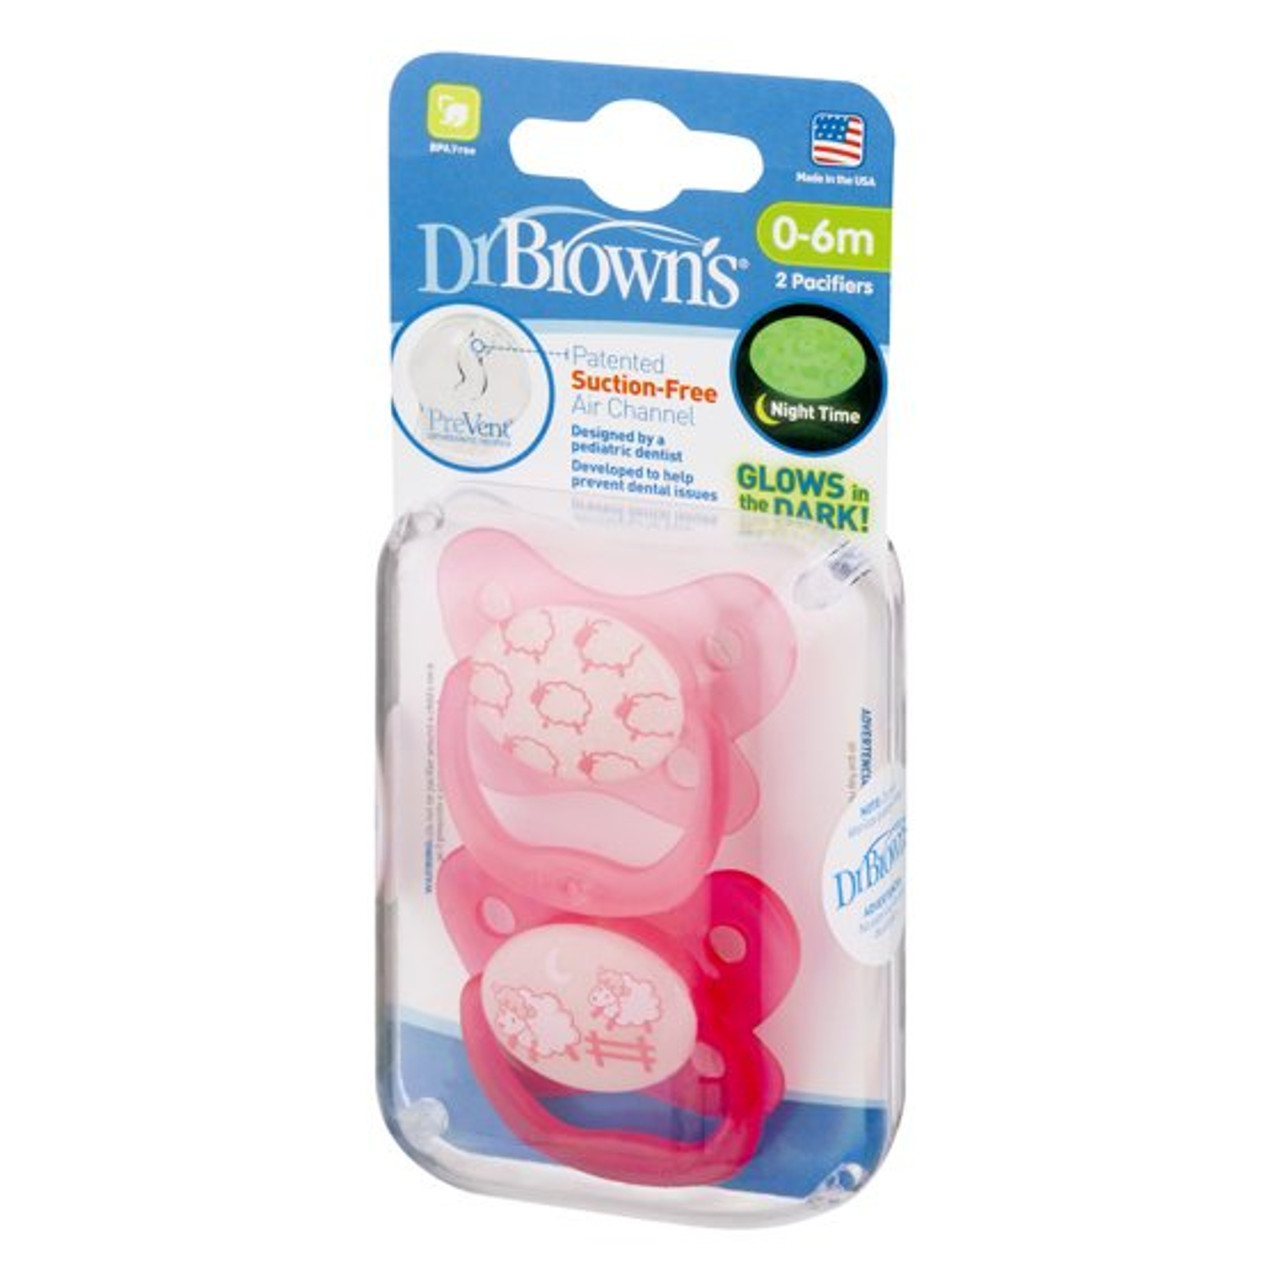 Dr Brown's PreVent Orthodontic Pacifiers Glow in the Dark 0-6M